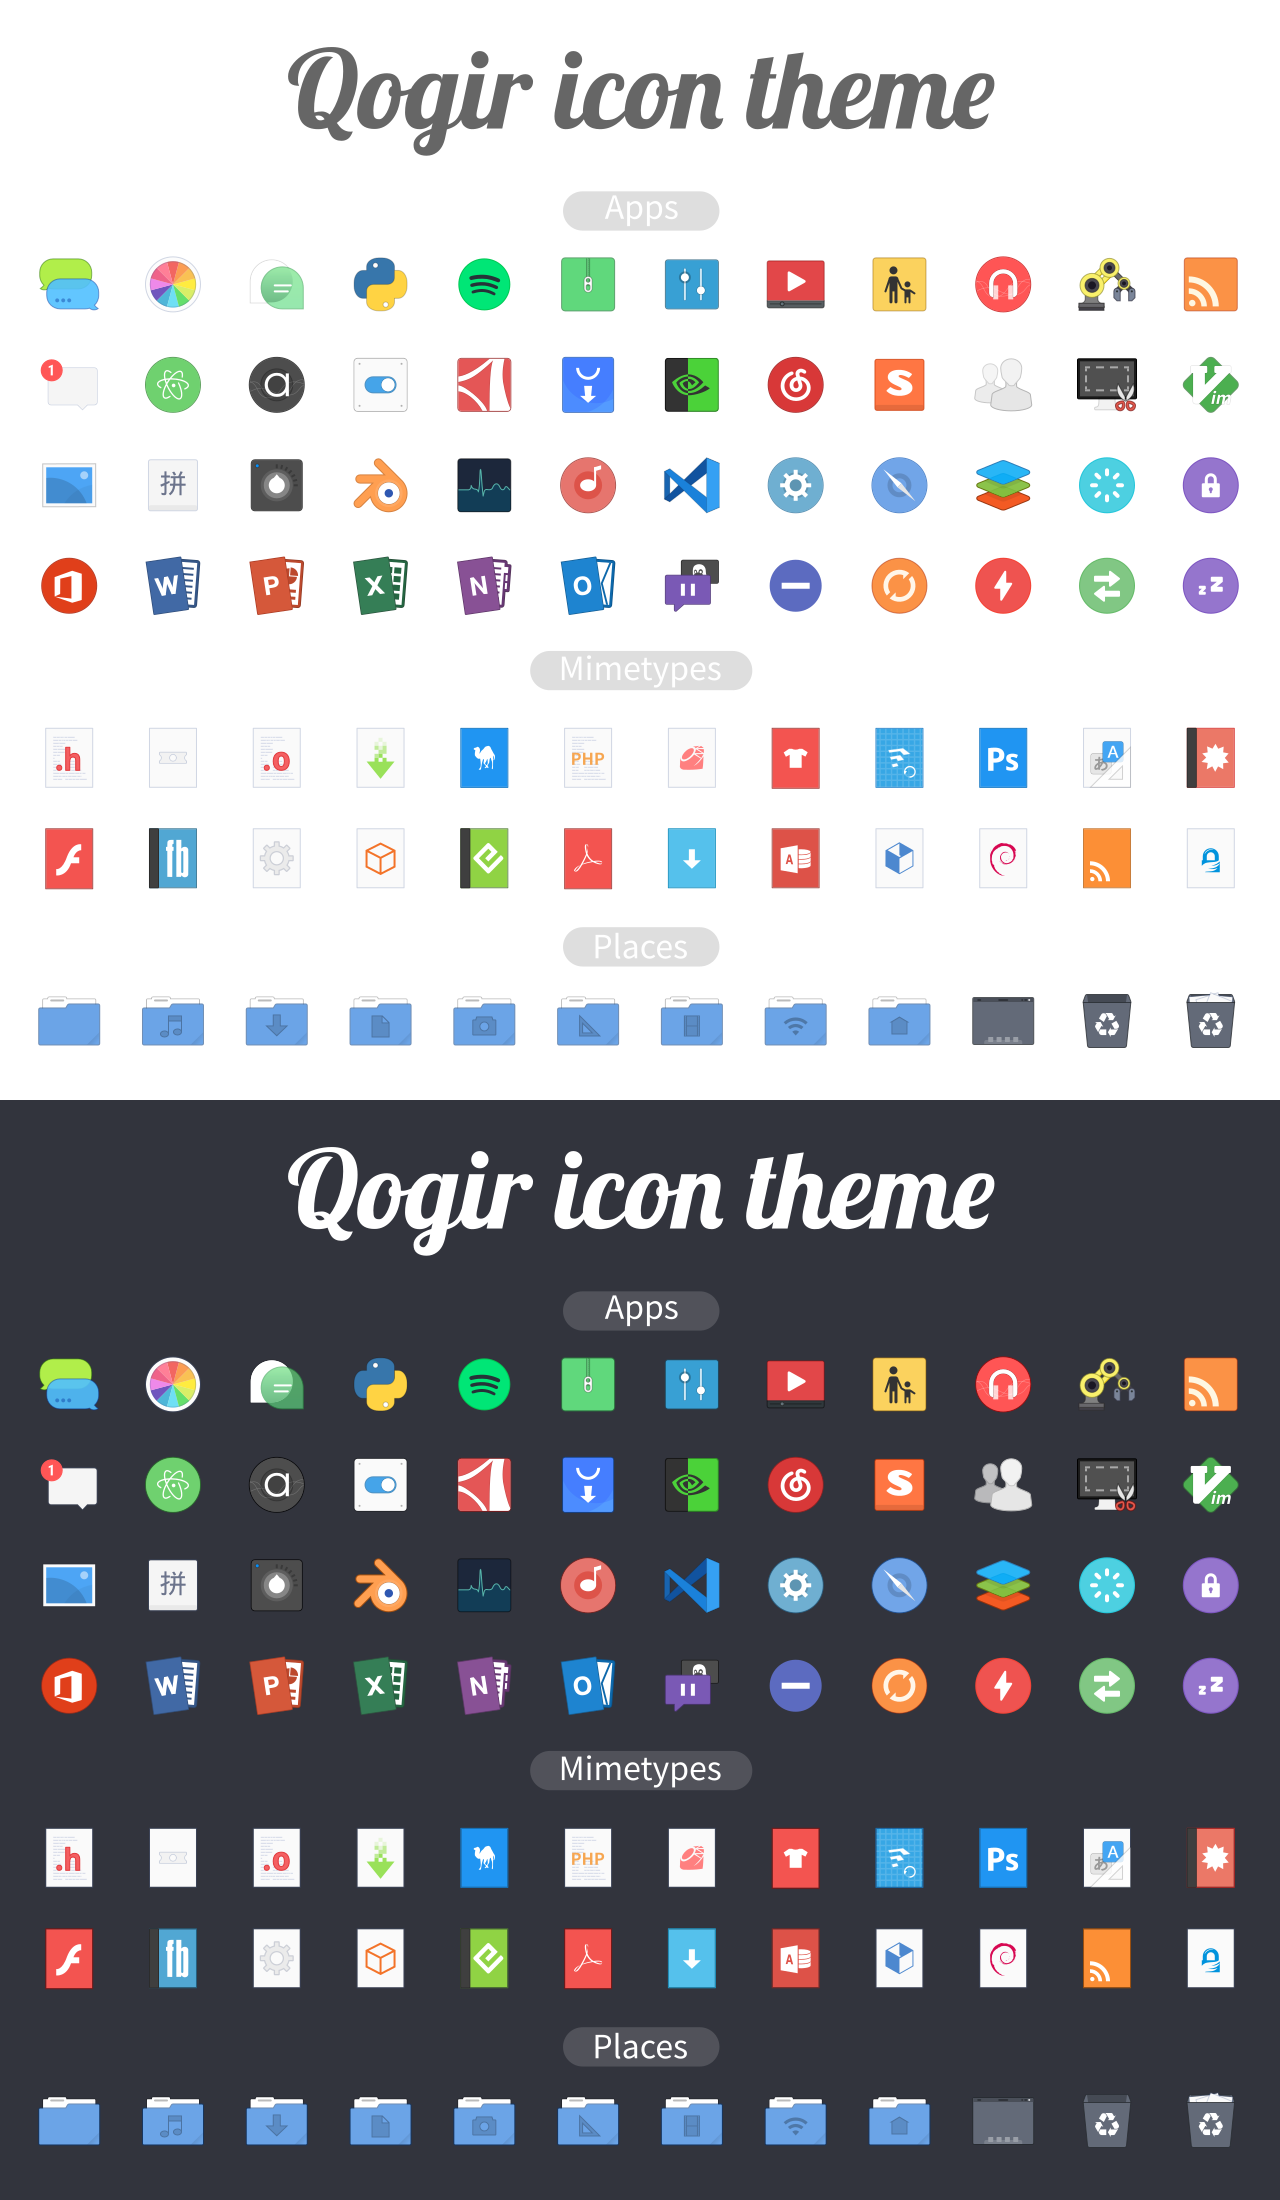 Qogir icon theme